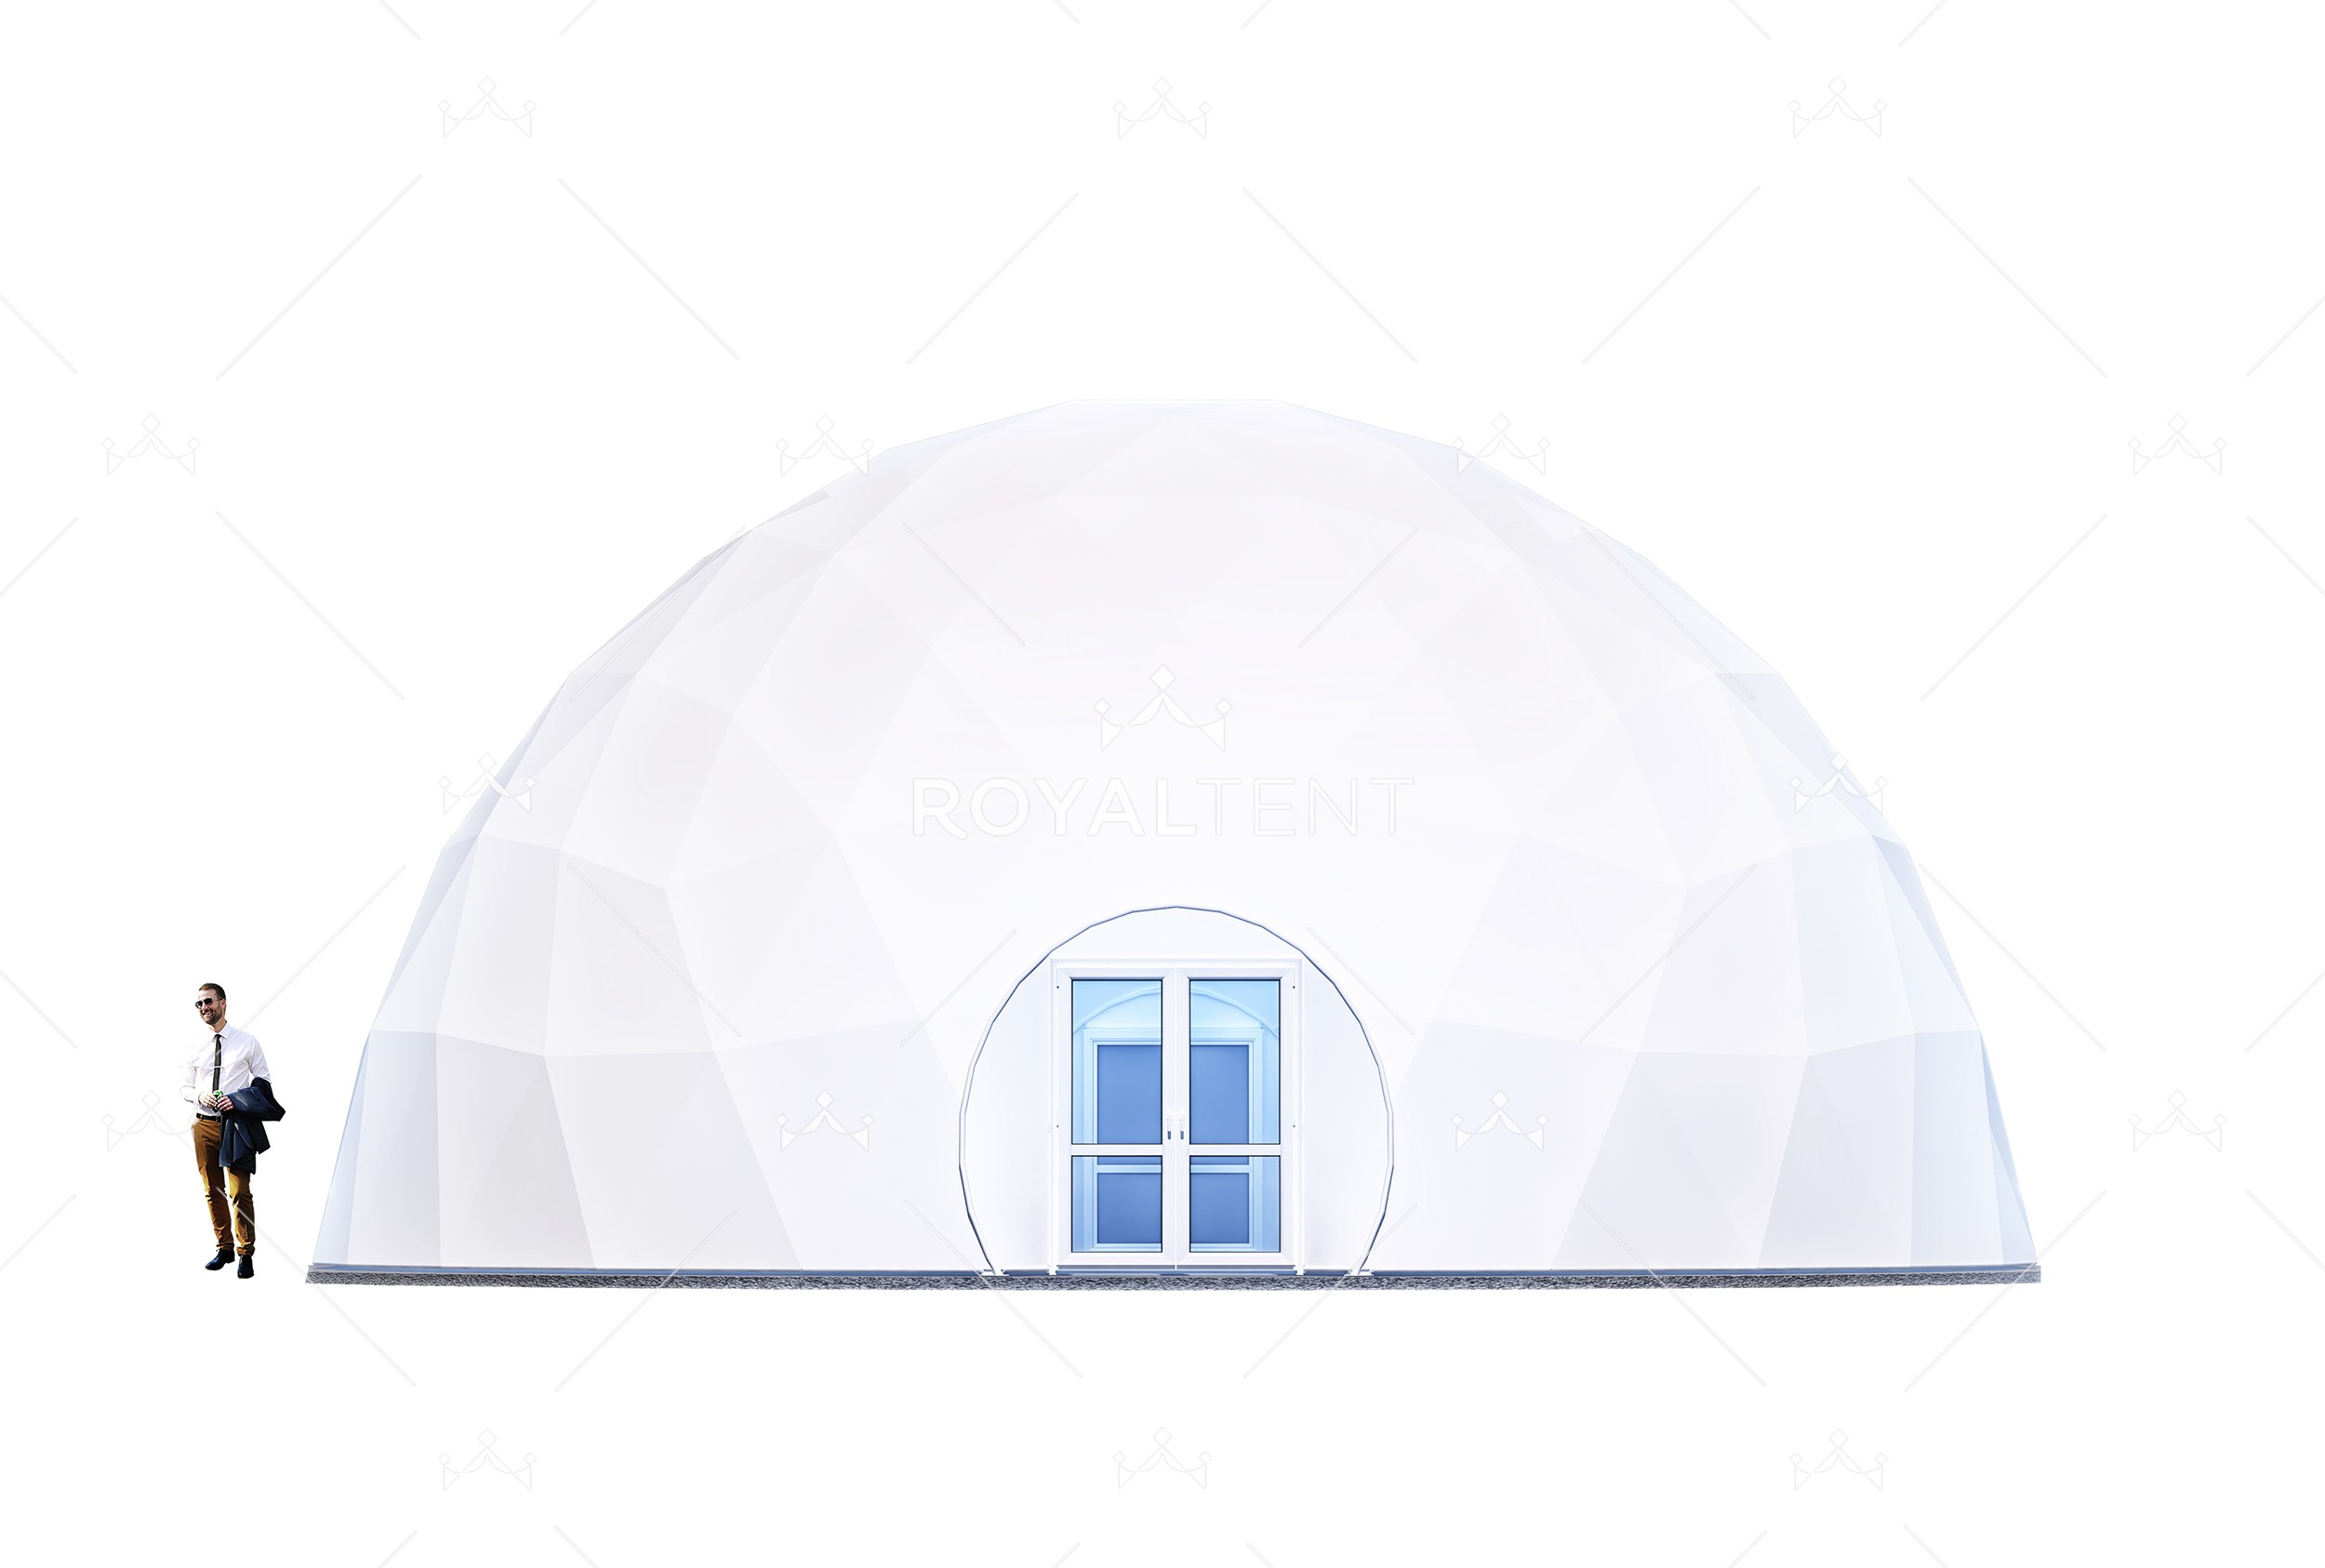 https://royaltent.me/houses_images/tent4_4_200111100338.jpg